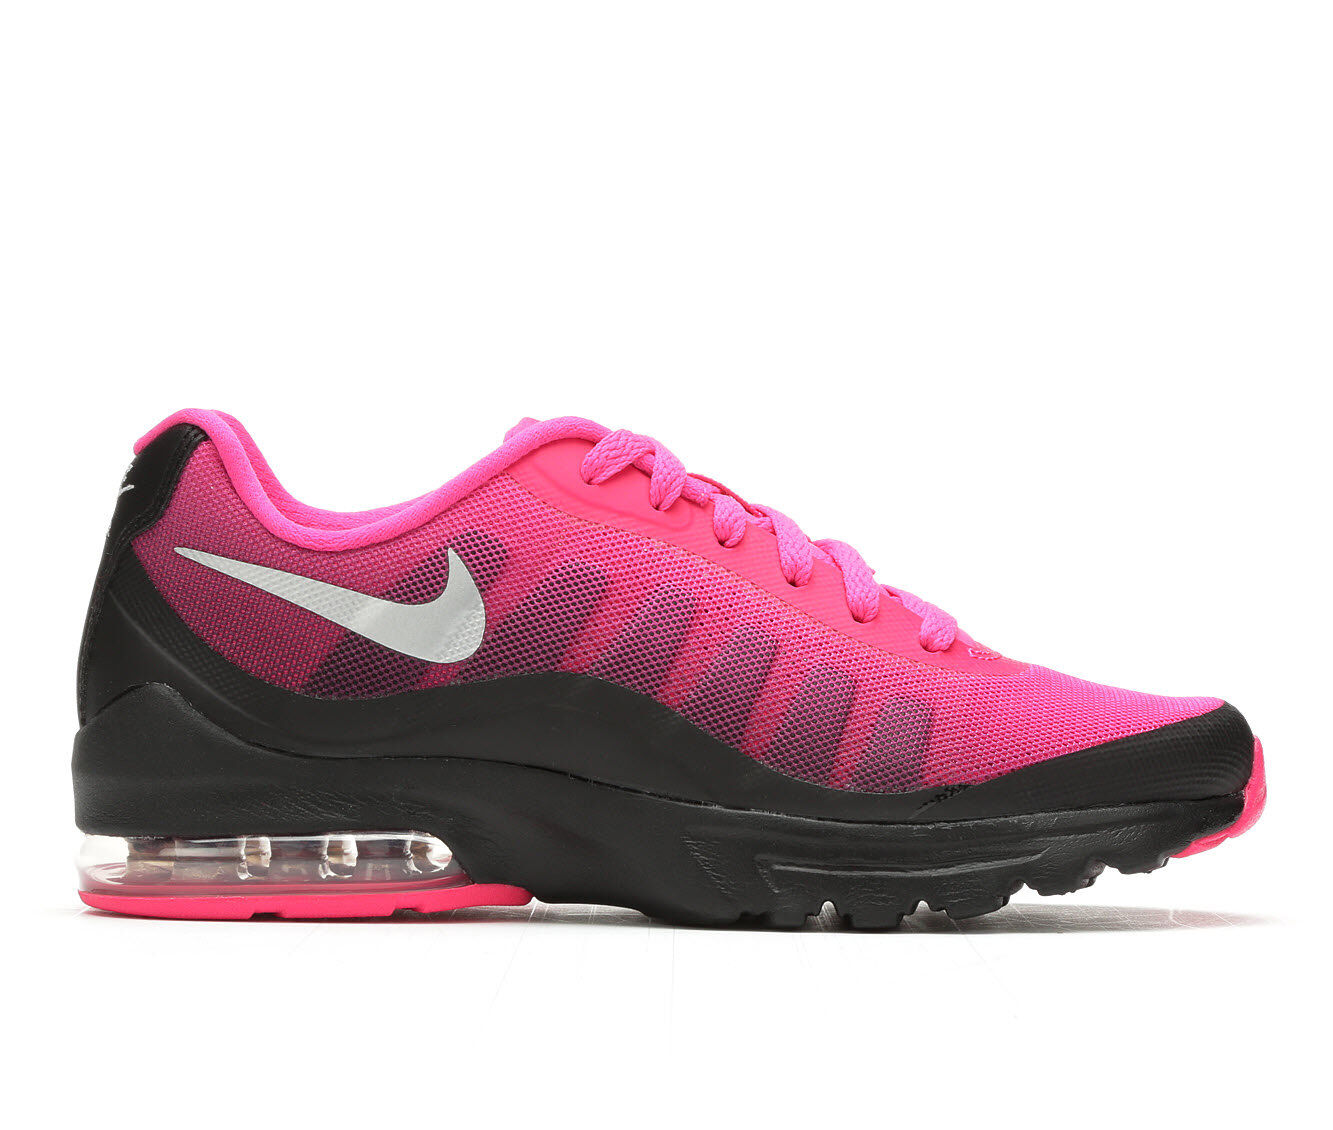 Excellent Quality Women's Nike Air Max Invigor Print Athletic Sneakers Black/Pink